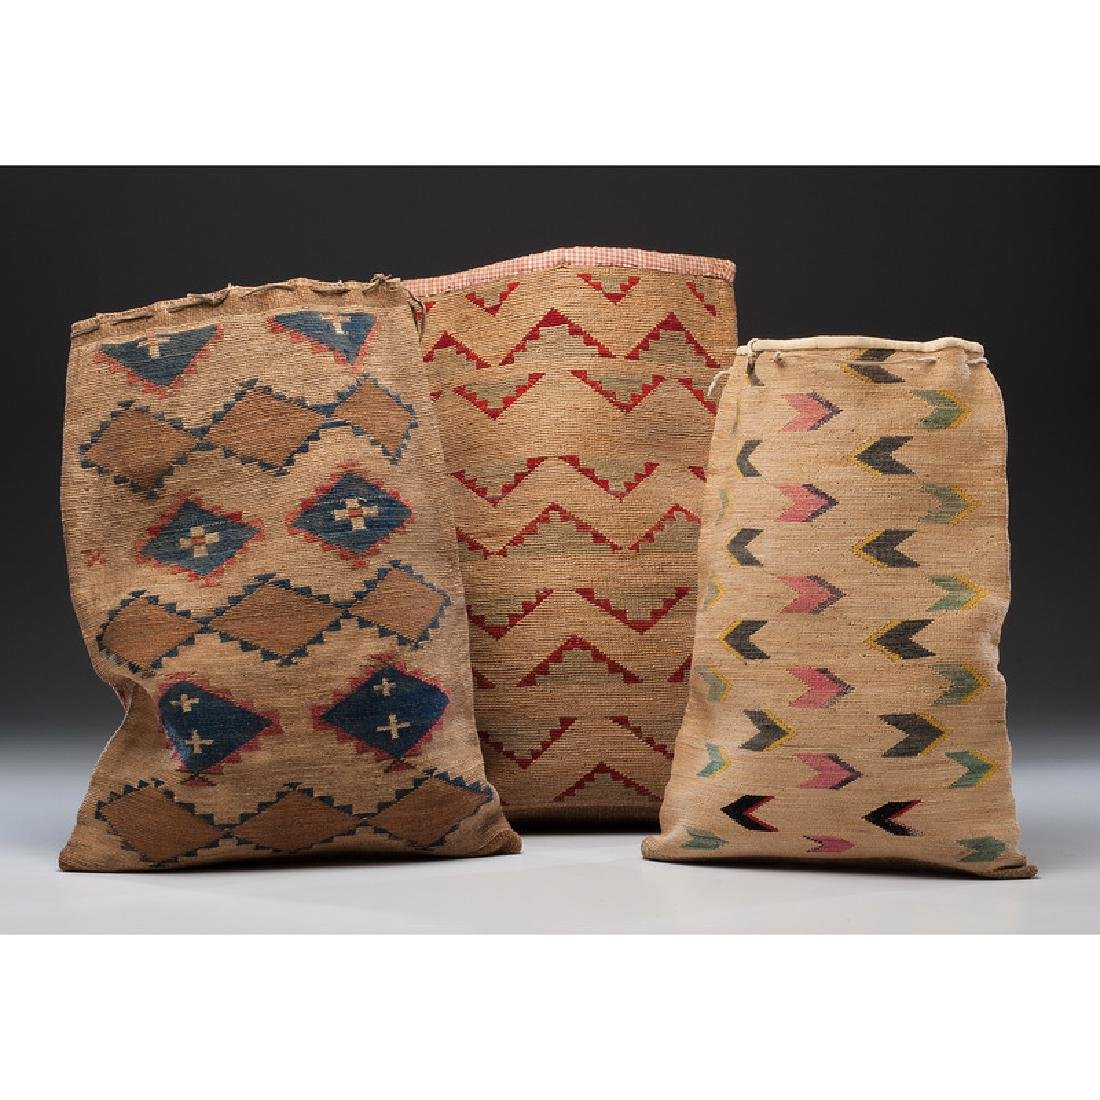 Nez Perce Corn Husk Flat Bags, From the Collection of - 2